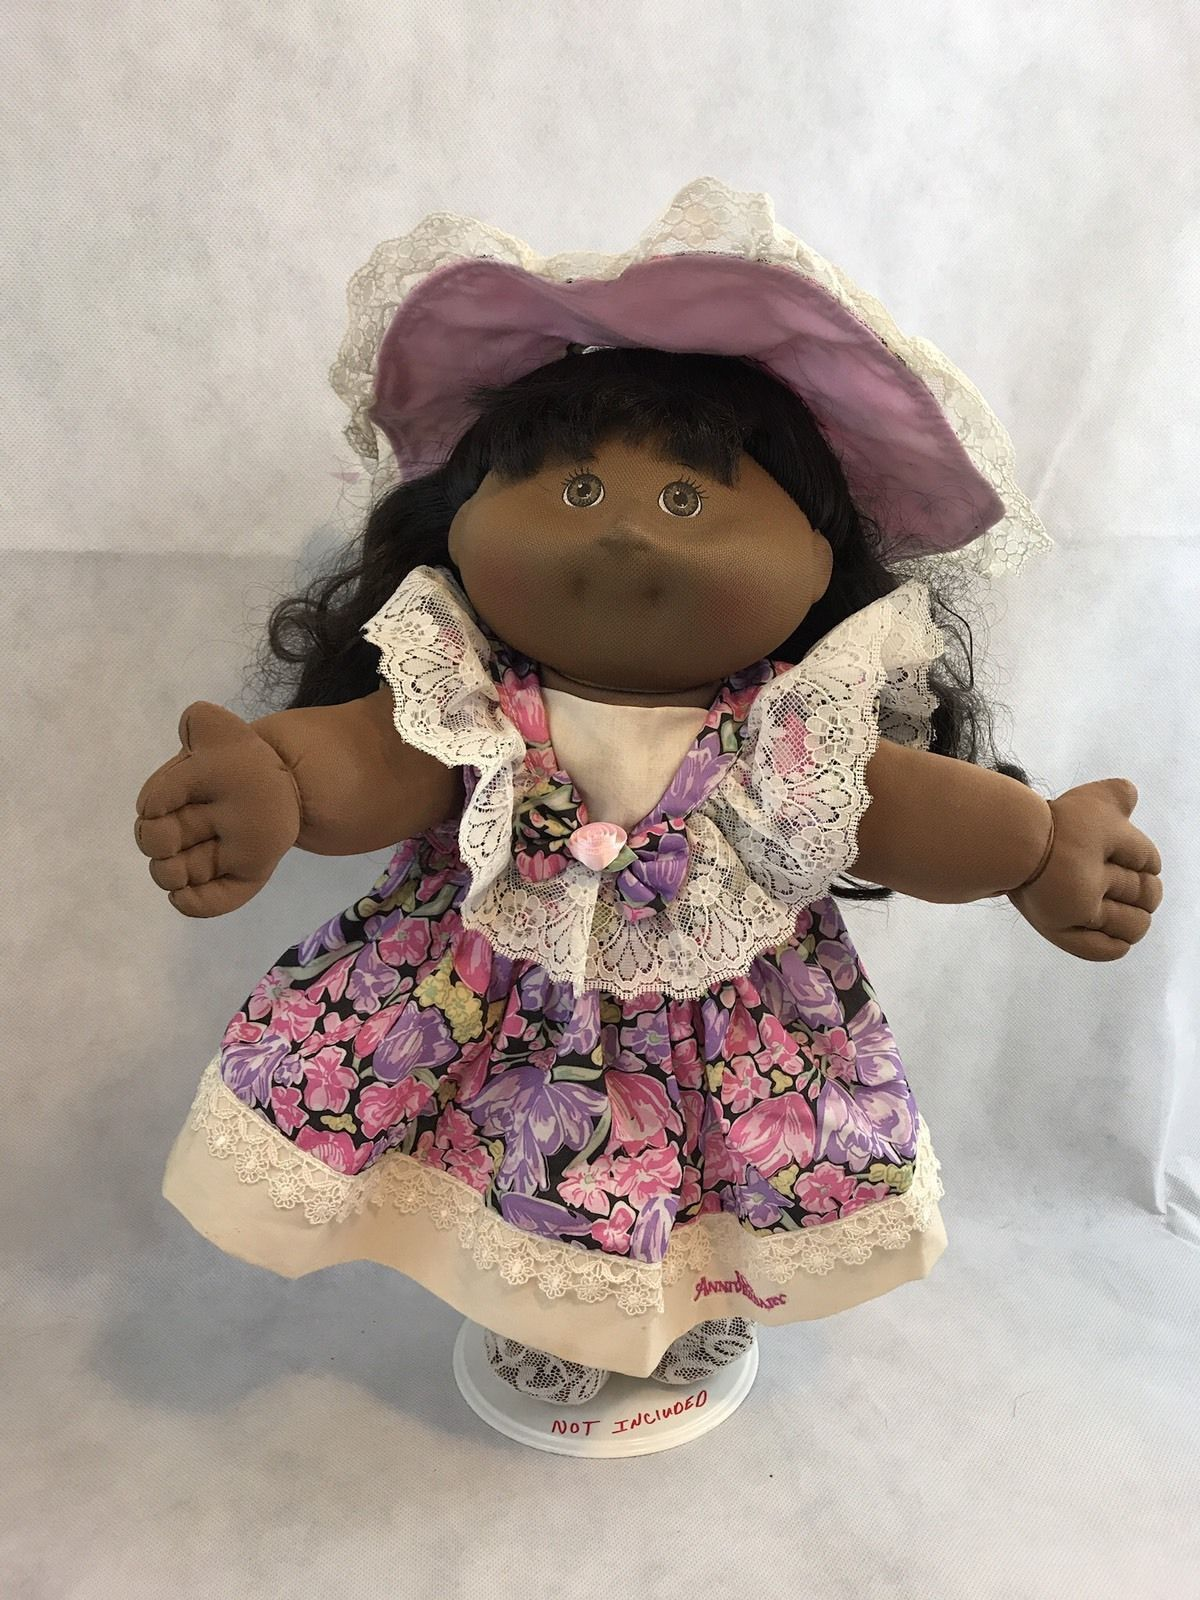 Vintage Cabbage Patch Kids African American 10th Anniversary Edition Doll In Dolls Bears Dolls By Brand Cabbage Patch Kids Cabbage Patch Dolls Patch Kids